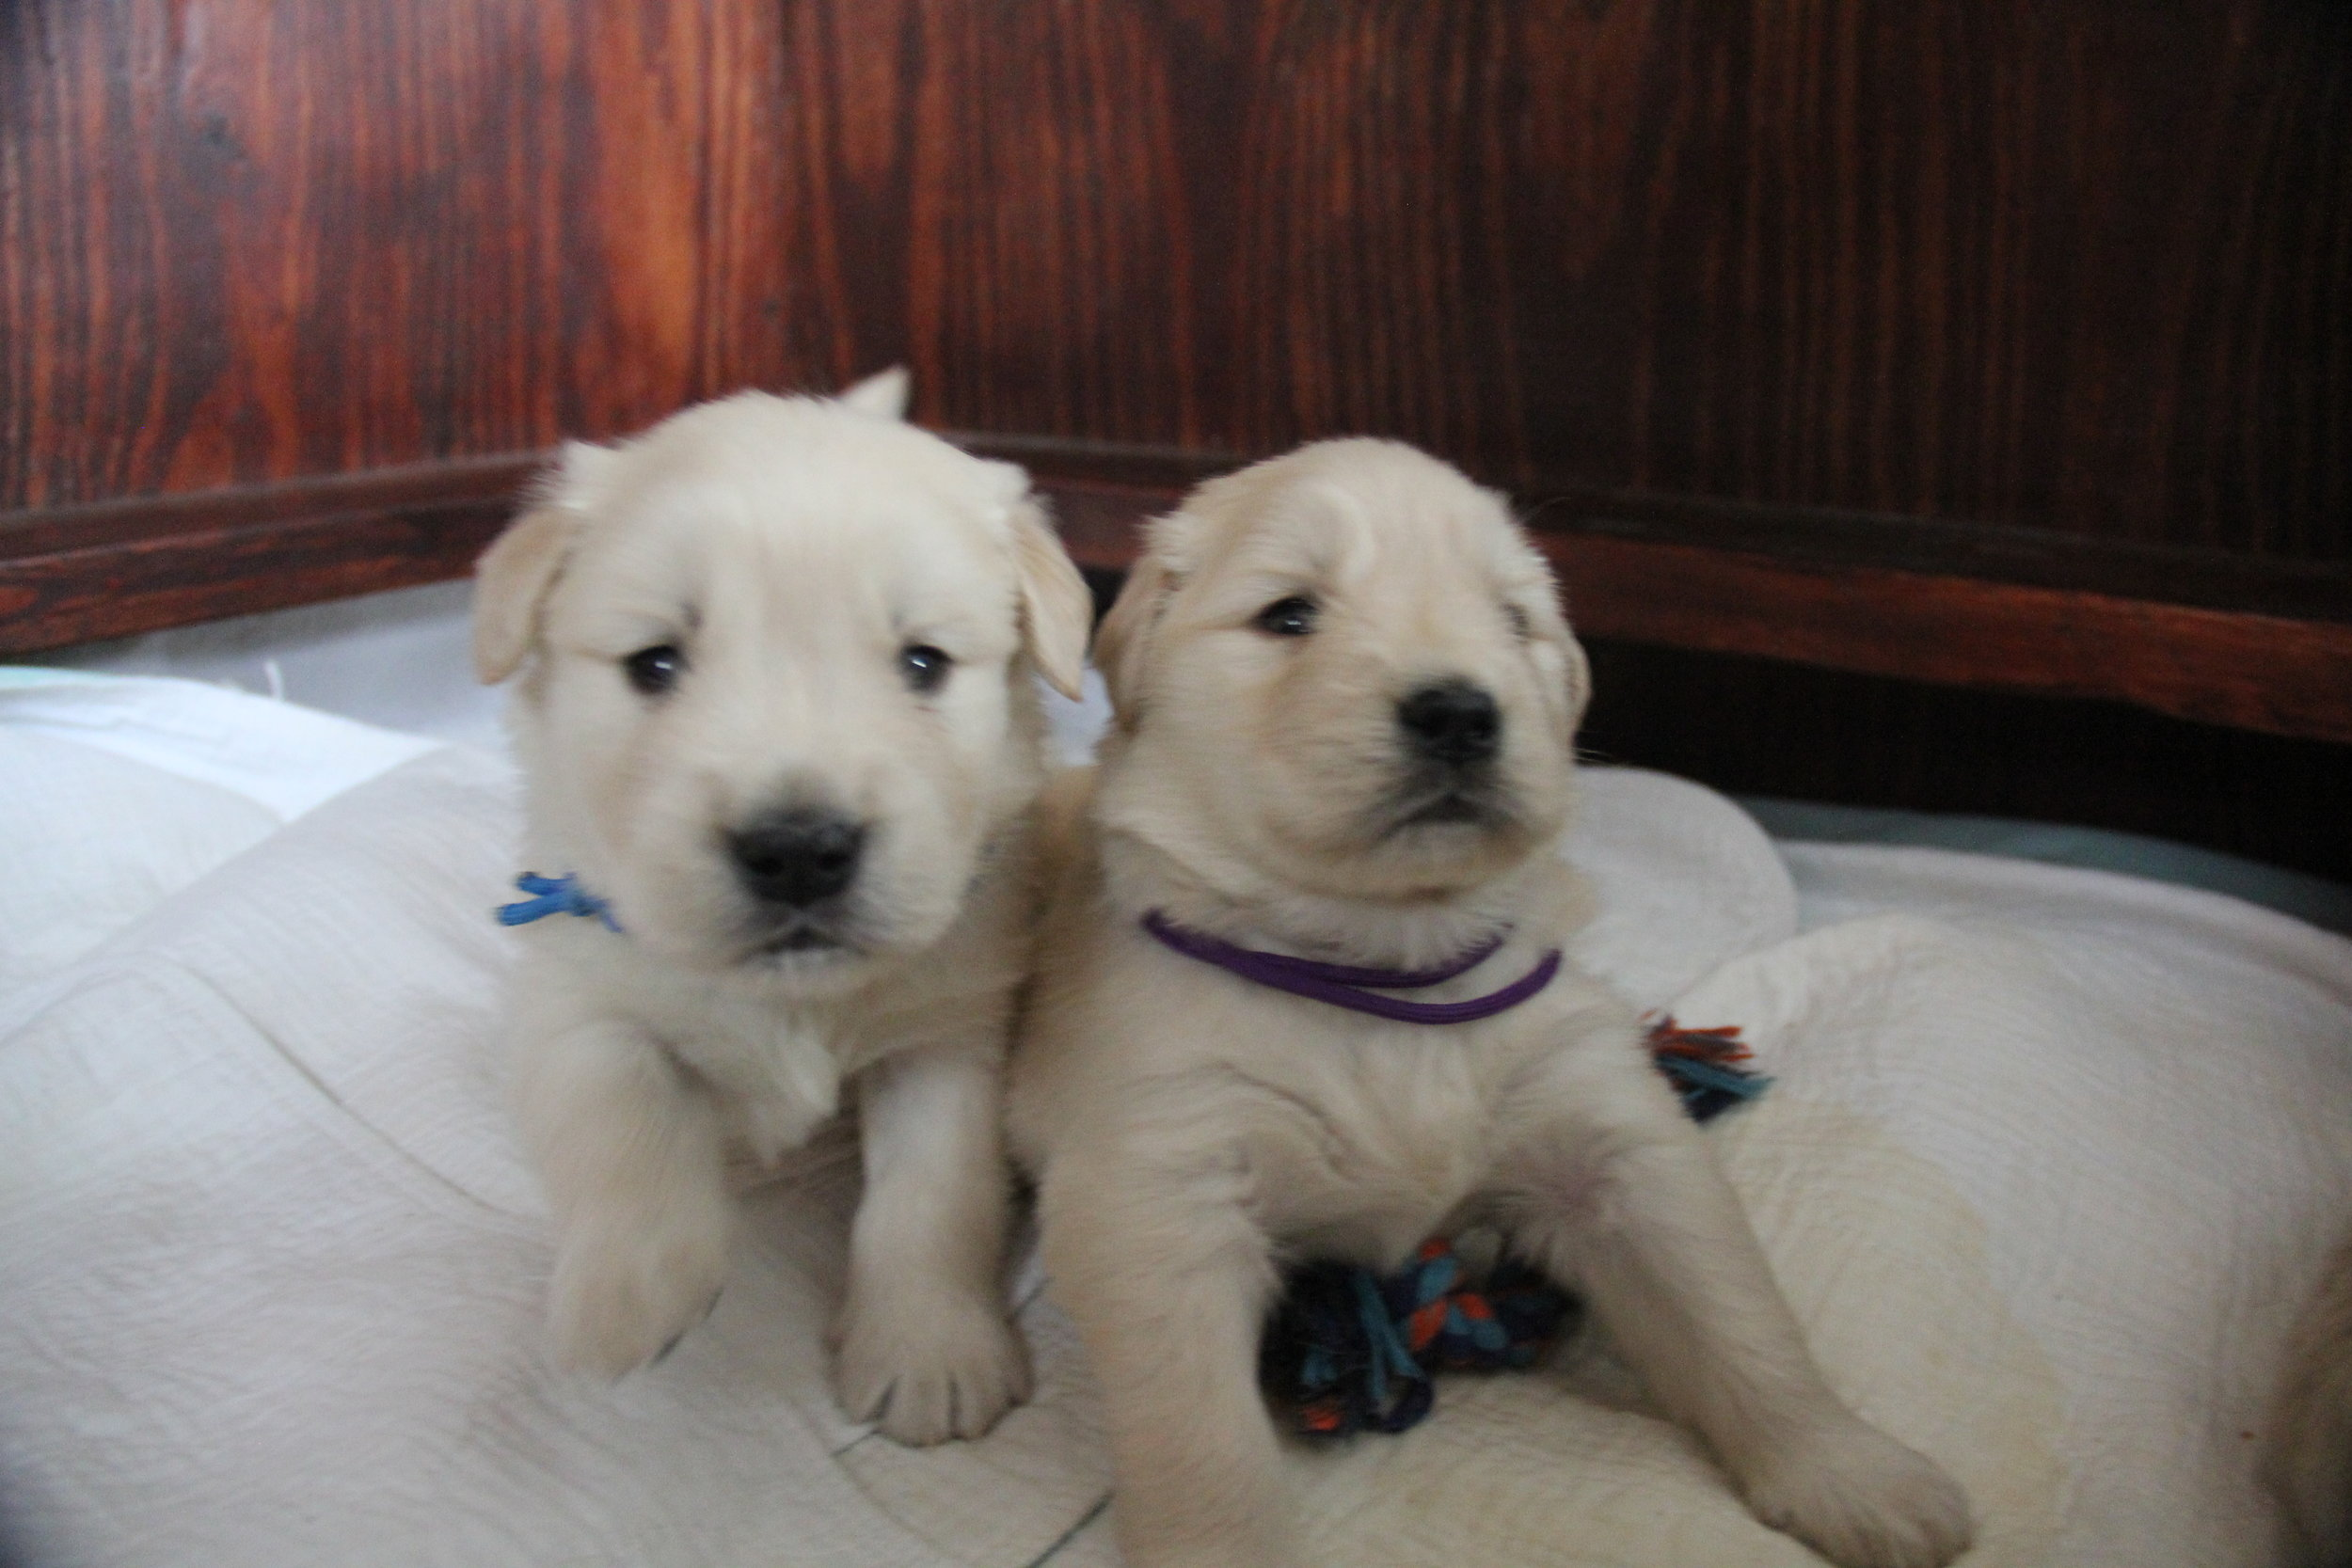 With her brother, MacDuff